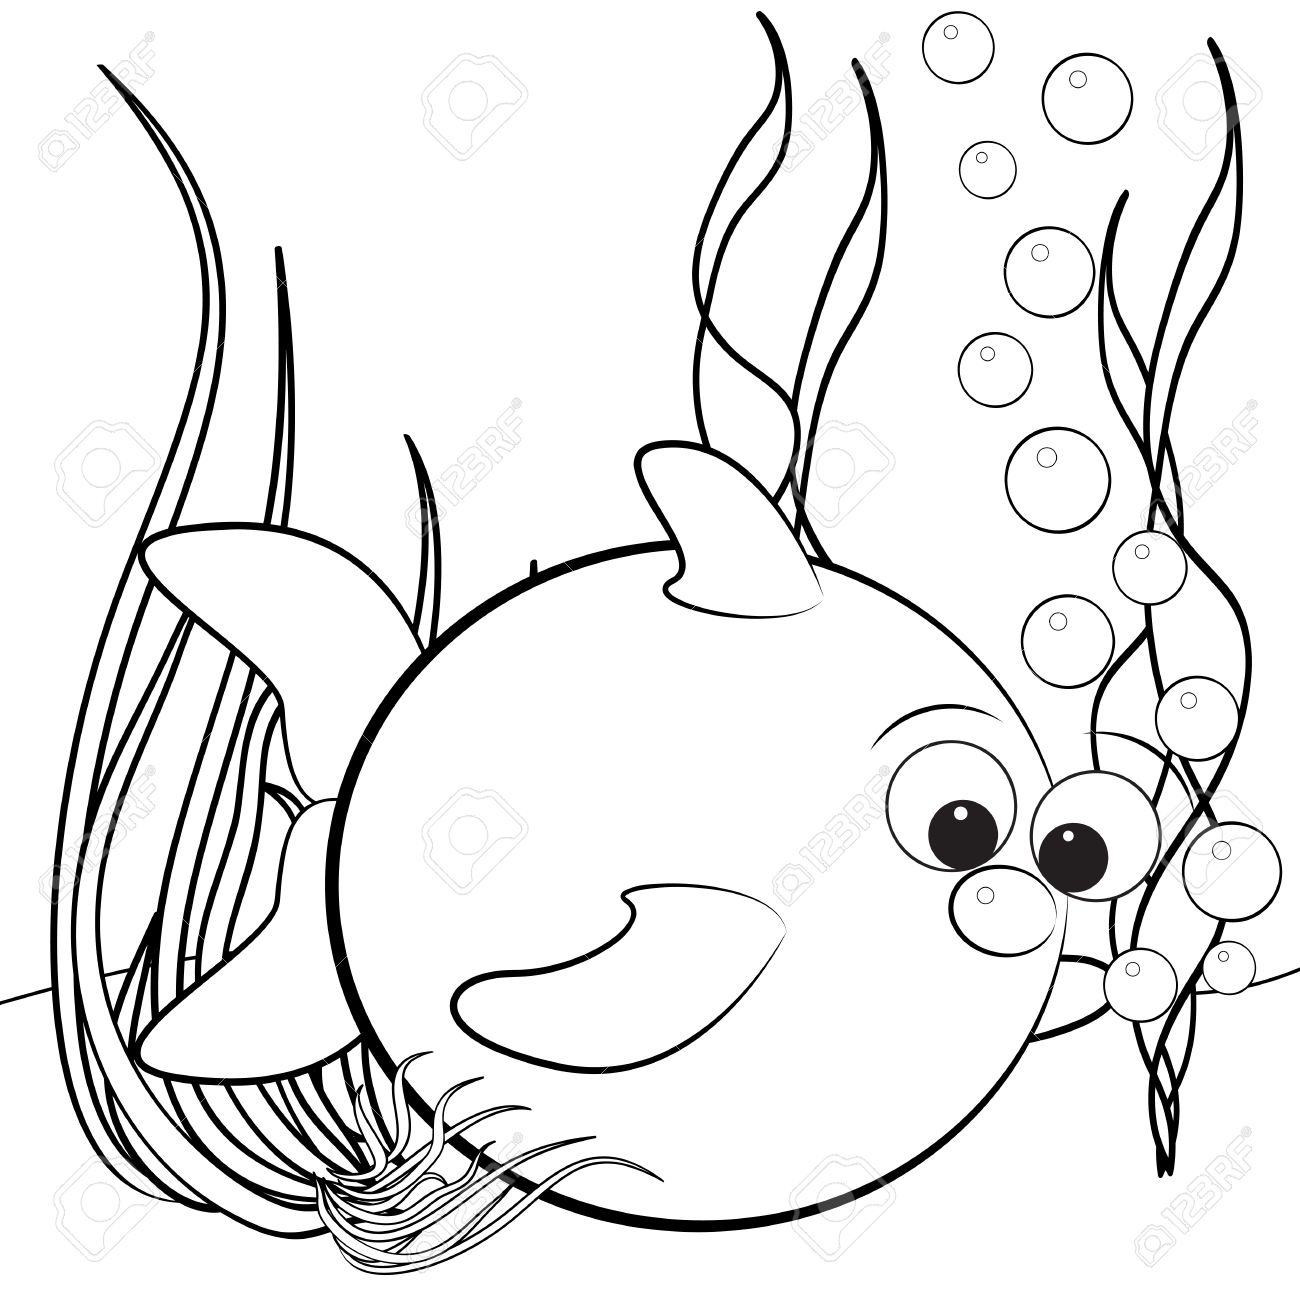 kids illustration with fish and air bubbles coloring page